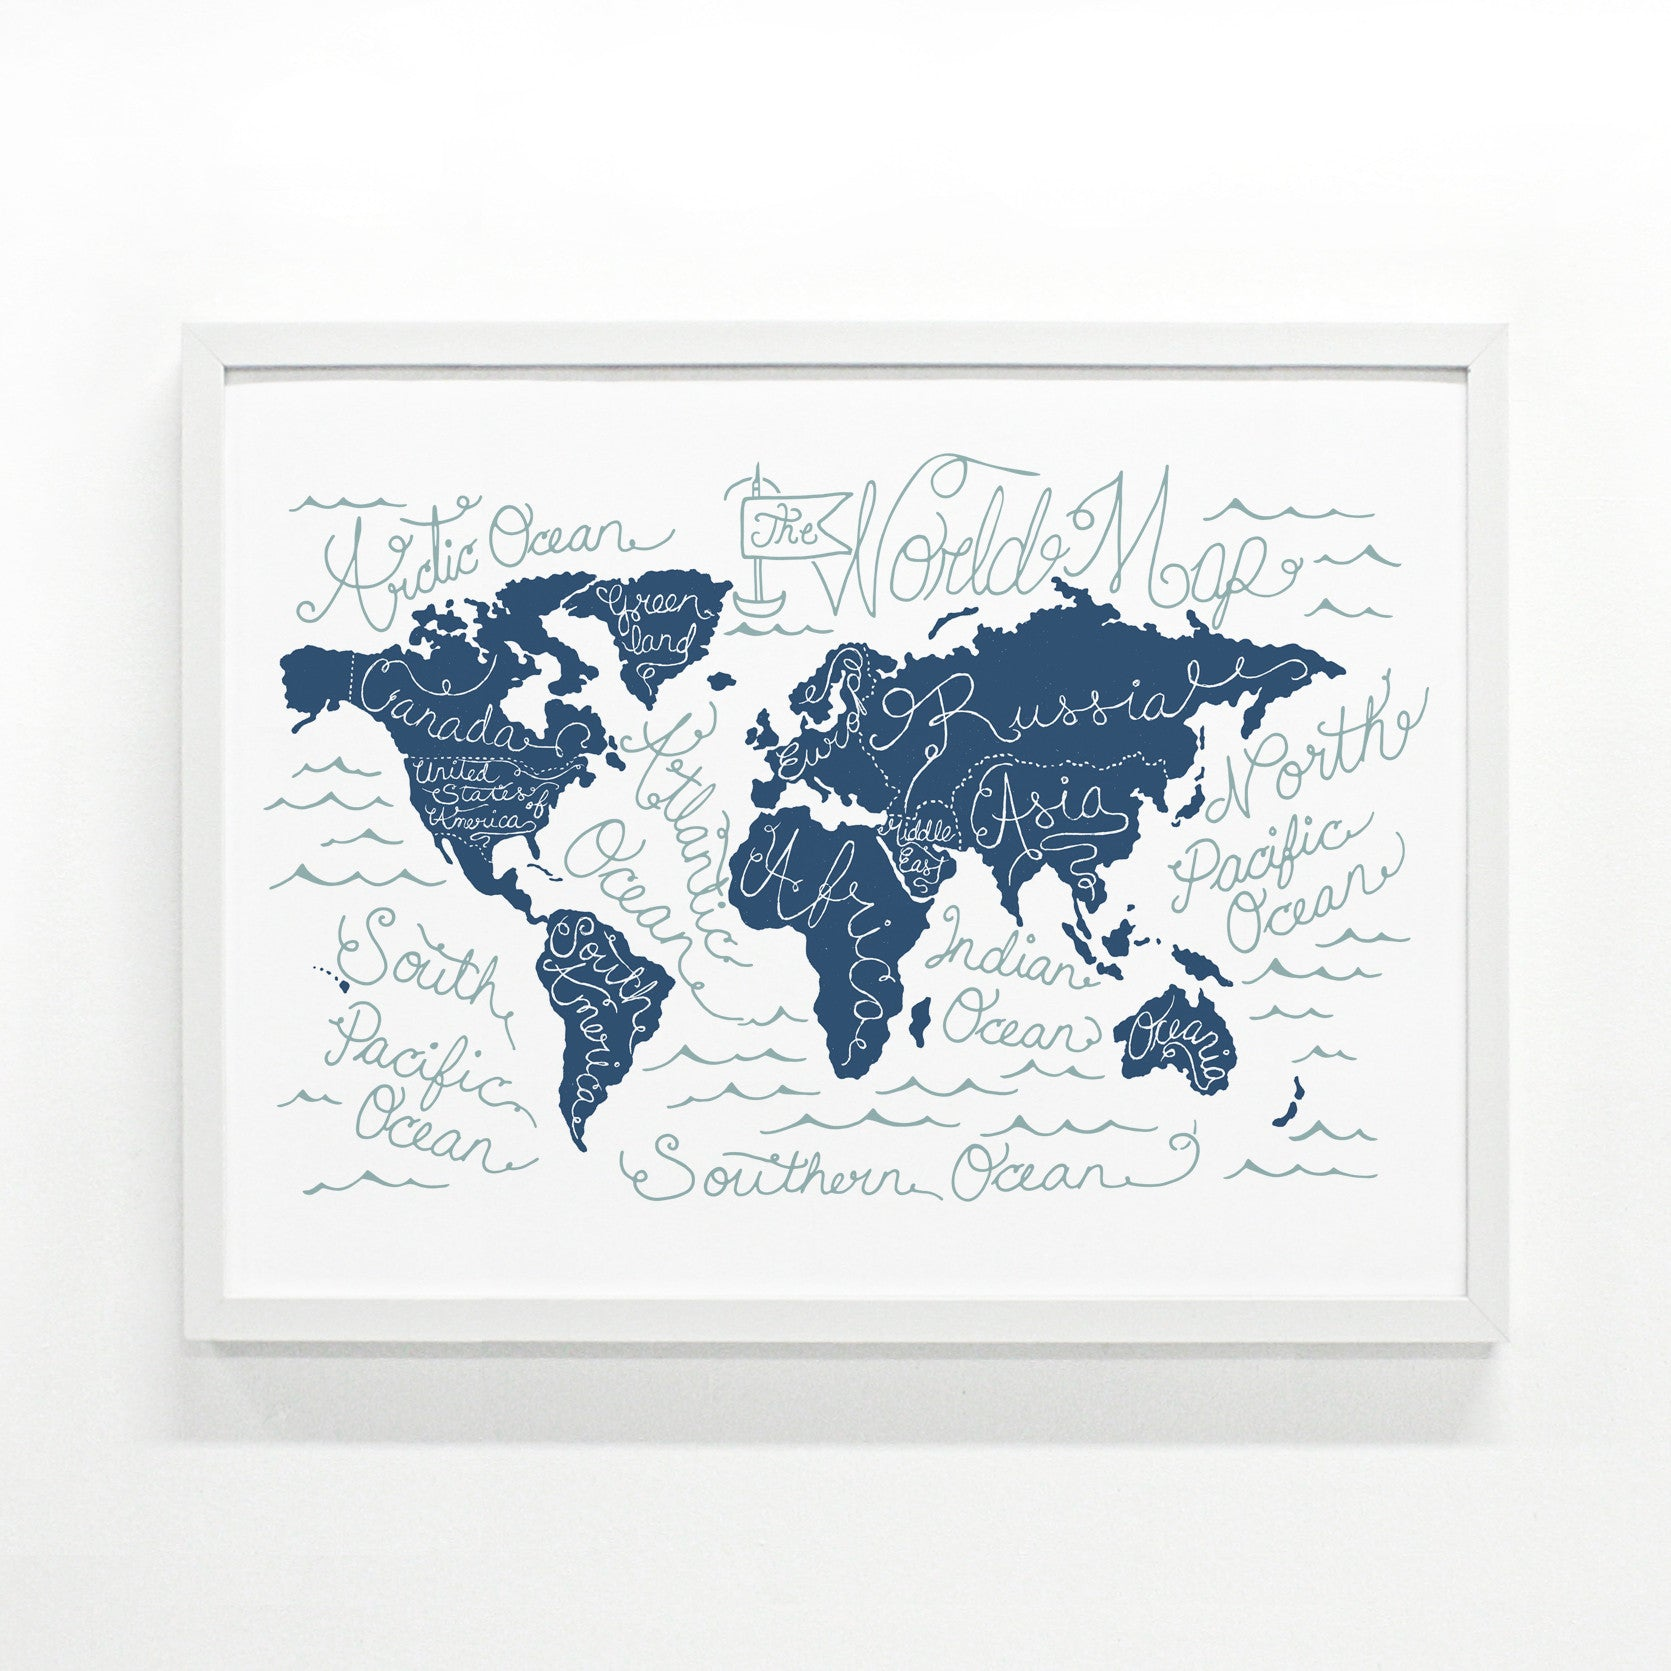 Silkscreen print world map screen printed poster 18 x 24 poster slate blue world map 18 x 24 modern screen printed poster by monorail studio gumiabroncs Images